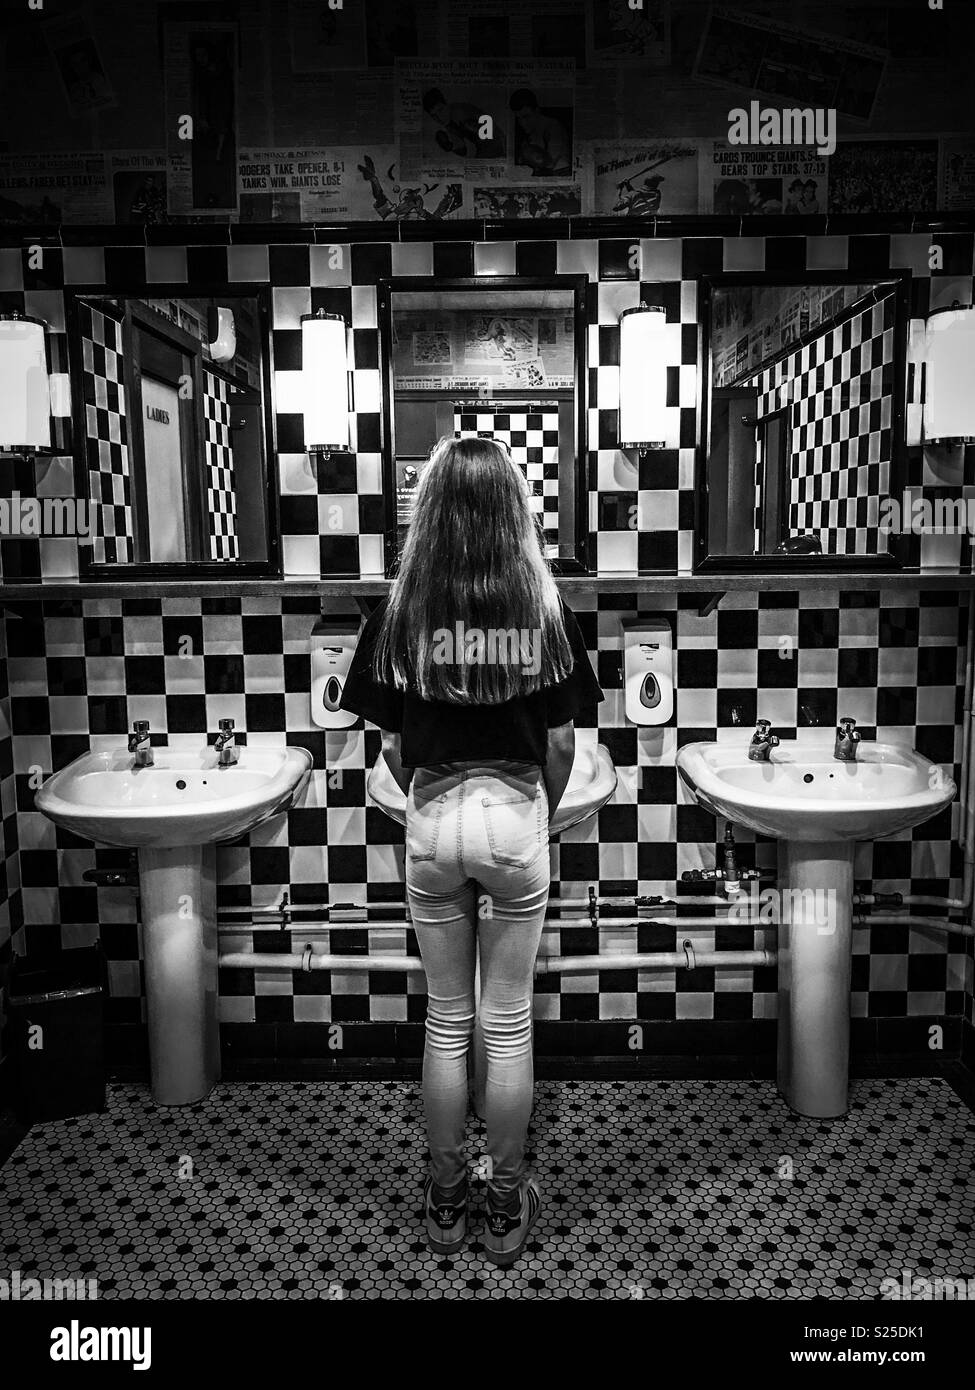 Girl Looking In A Mirror In A Restaurant Bathroom Stock Photo